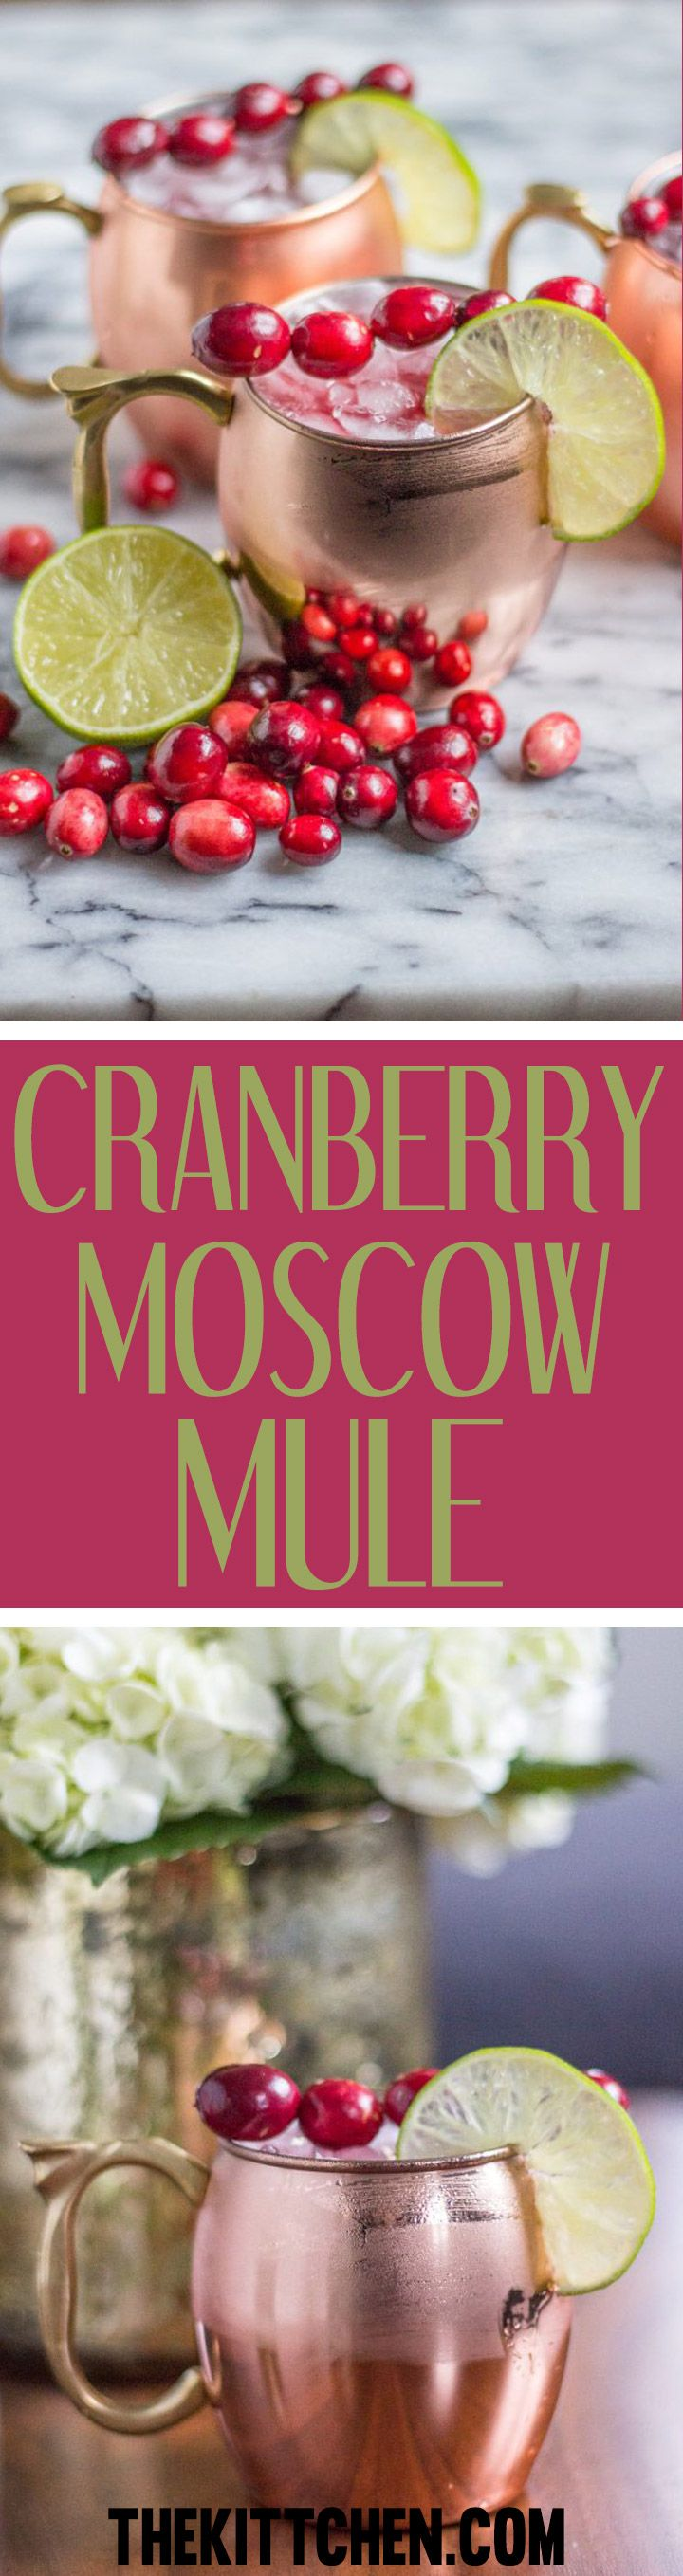 Just in time for the holidays, the perfect drink to have with family and friends or by the fire is here, the cranberry moscow mule. This twist of the classic is perfect for the holidays. #moswcowmule #christmasrecipes ********************** Moscow mule recipe   Moscow mule recipe best   Holiday drinks   Holiday drinks alcohol   Cranberry moscow mule recipe   Christmas drinks alcohol   Christmas drinks alcohol recipes